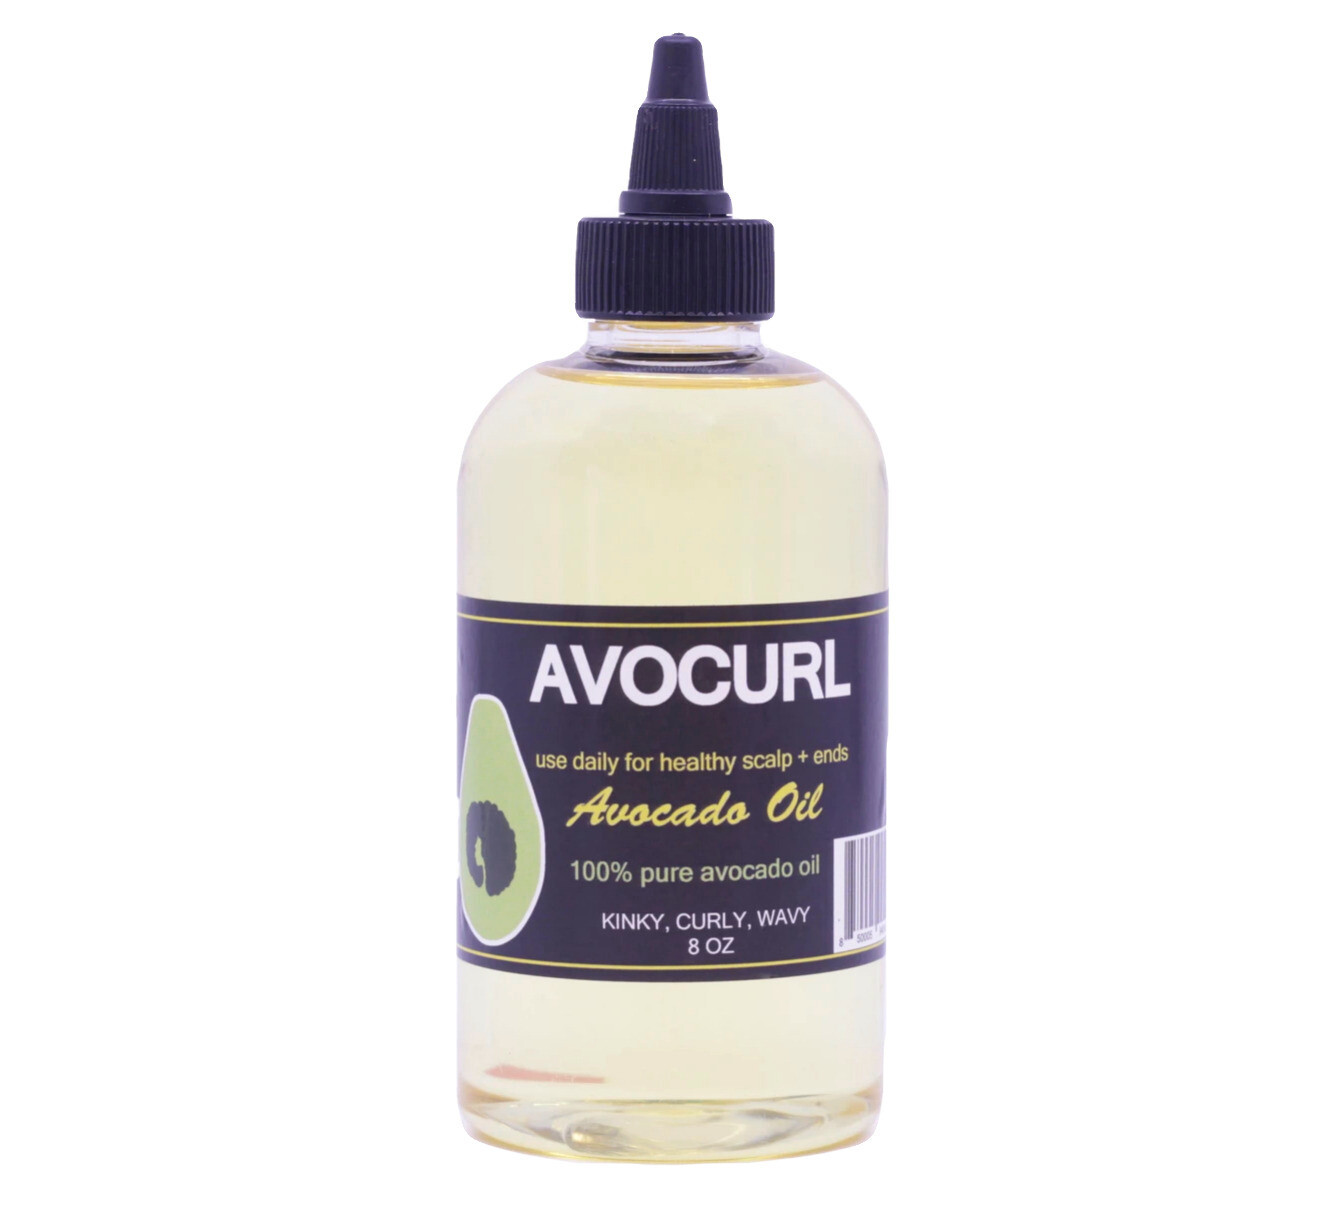 AVOCURL Avocado Oil